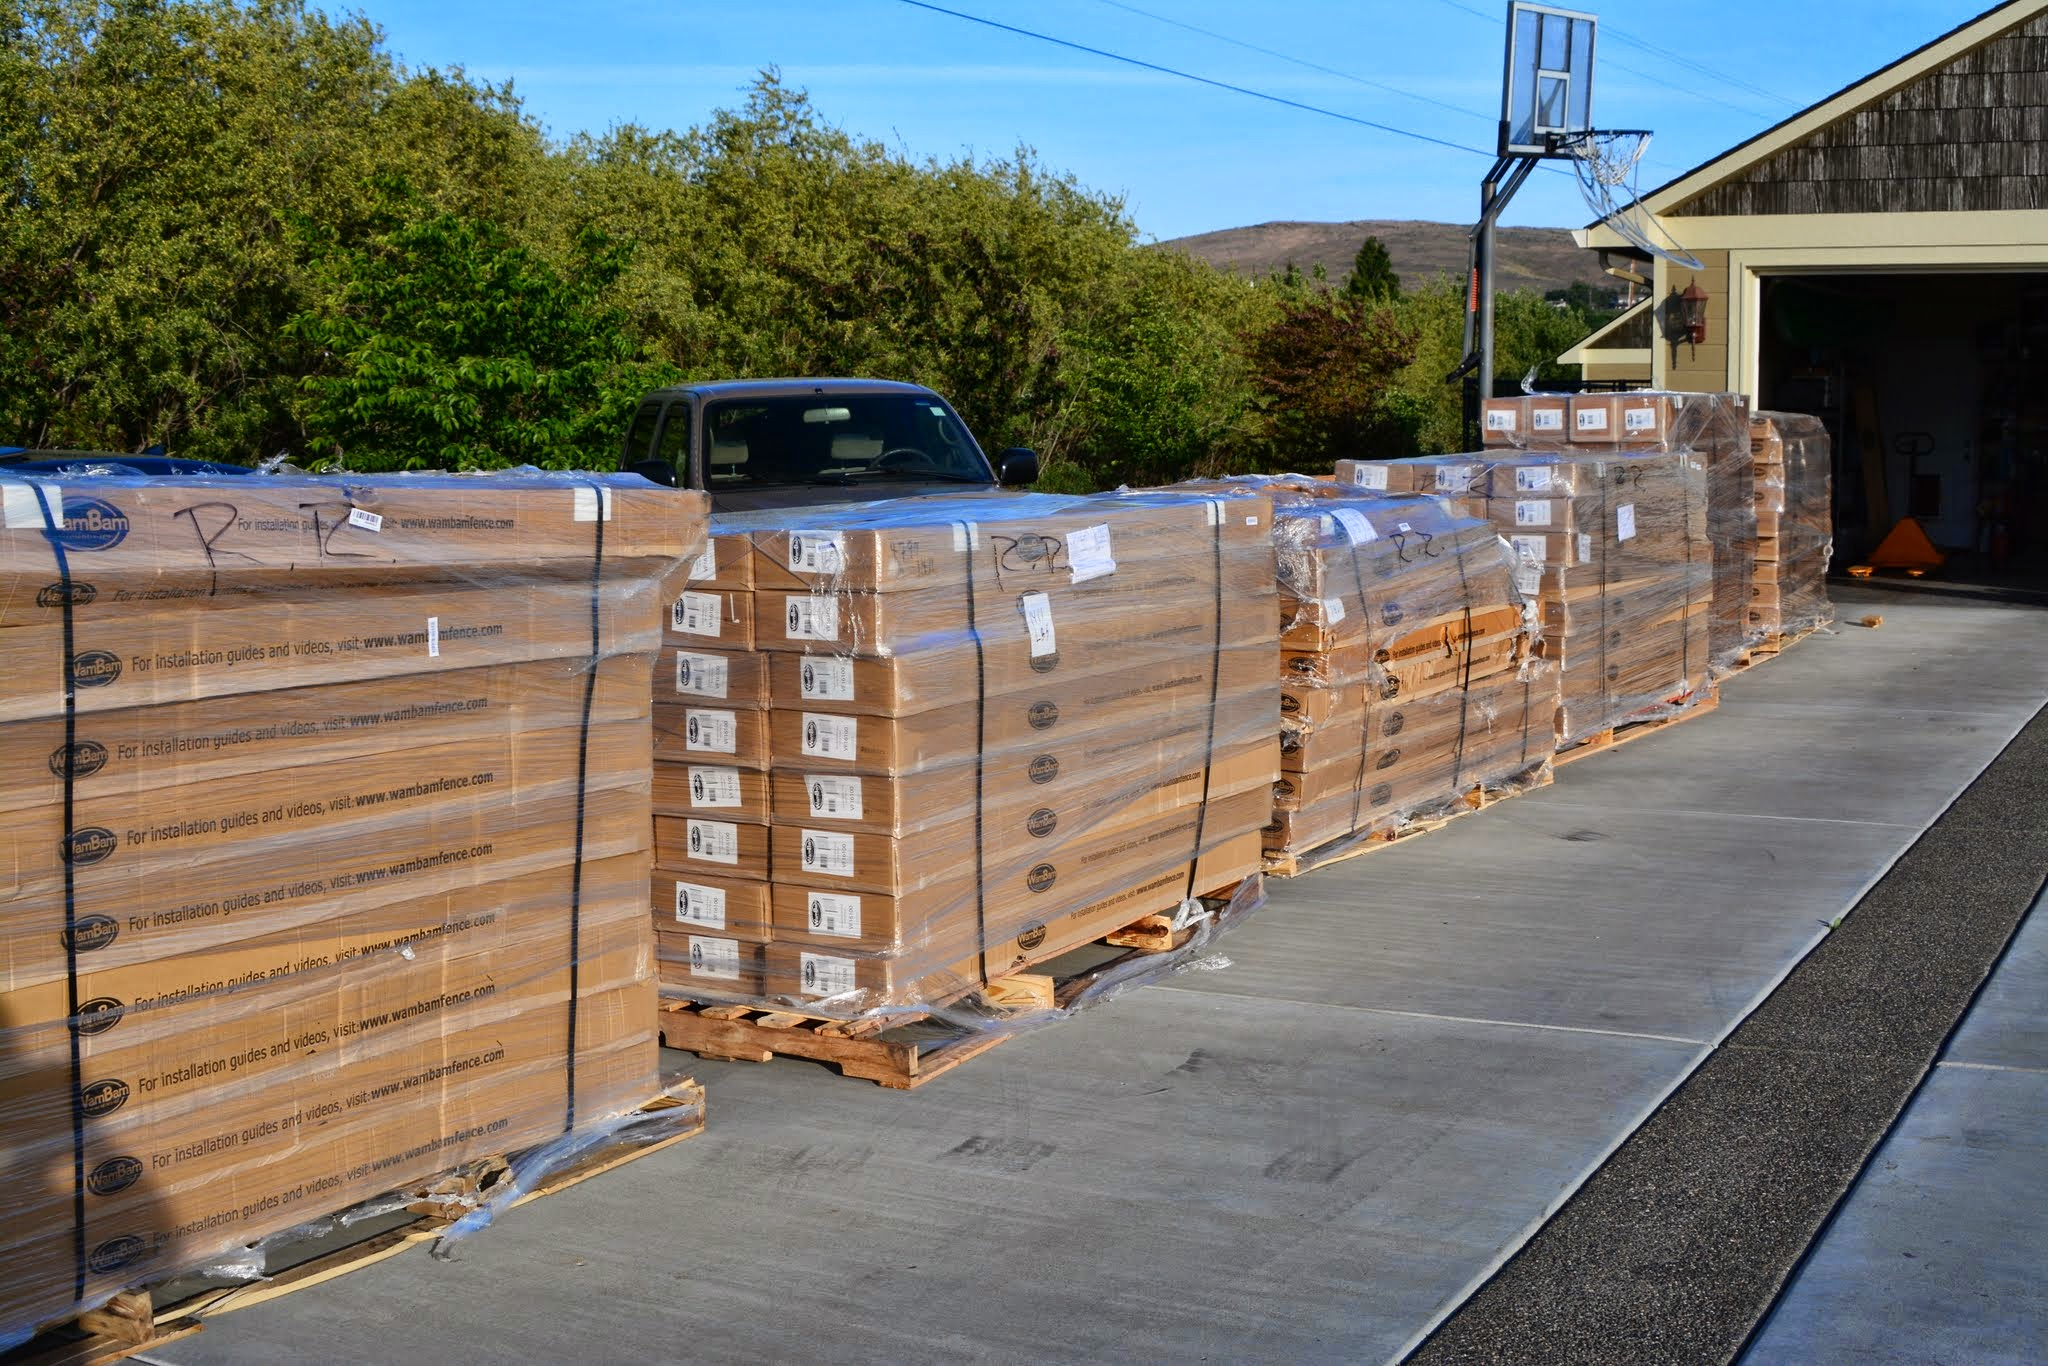 6 pallets of fence sitting in the driveway. He must have felt overwhelmed!